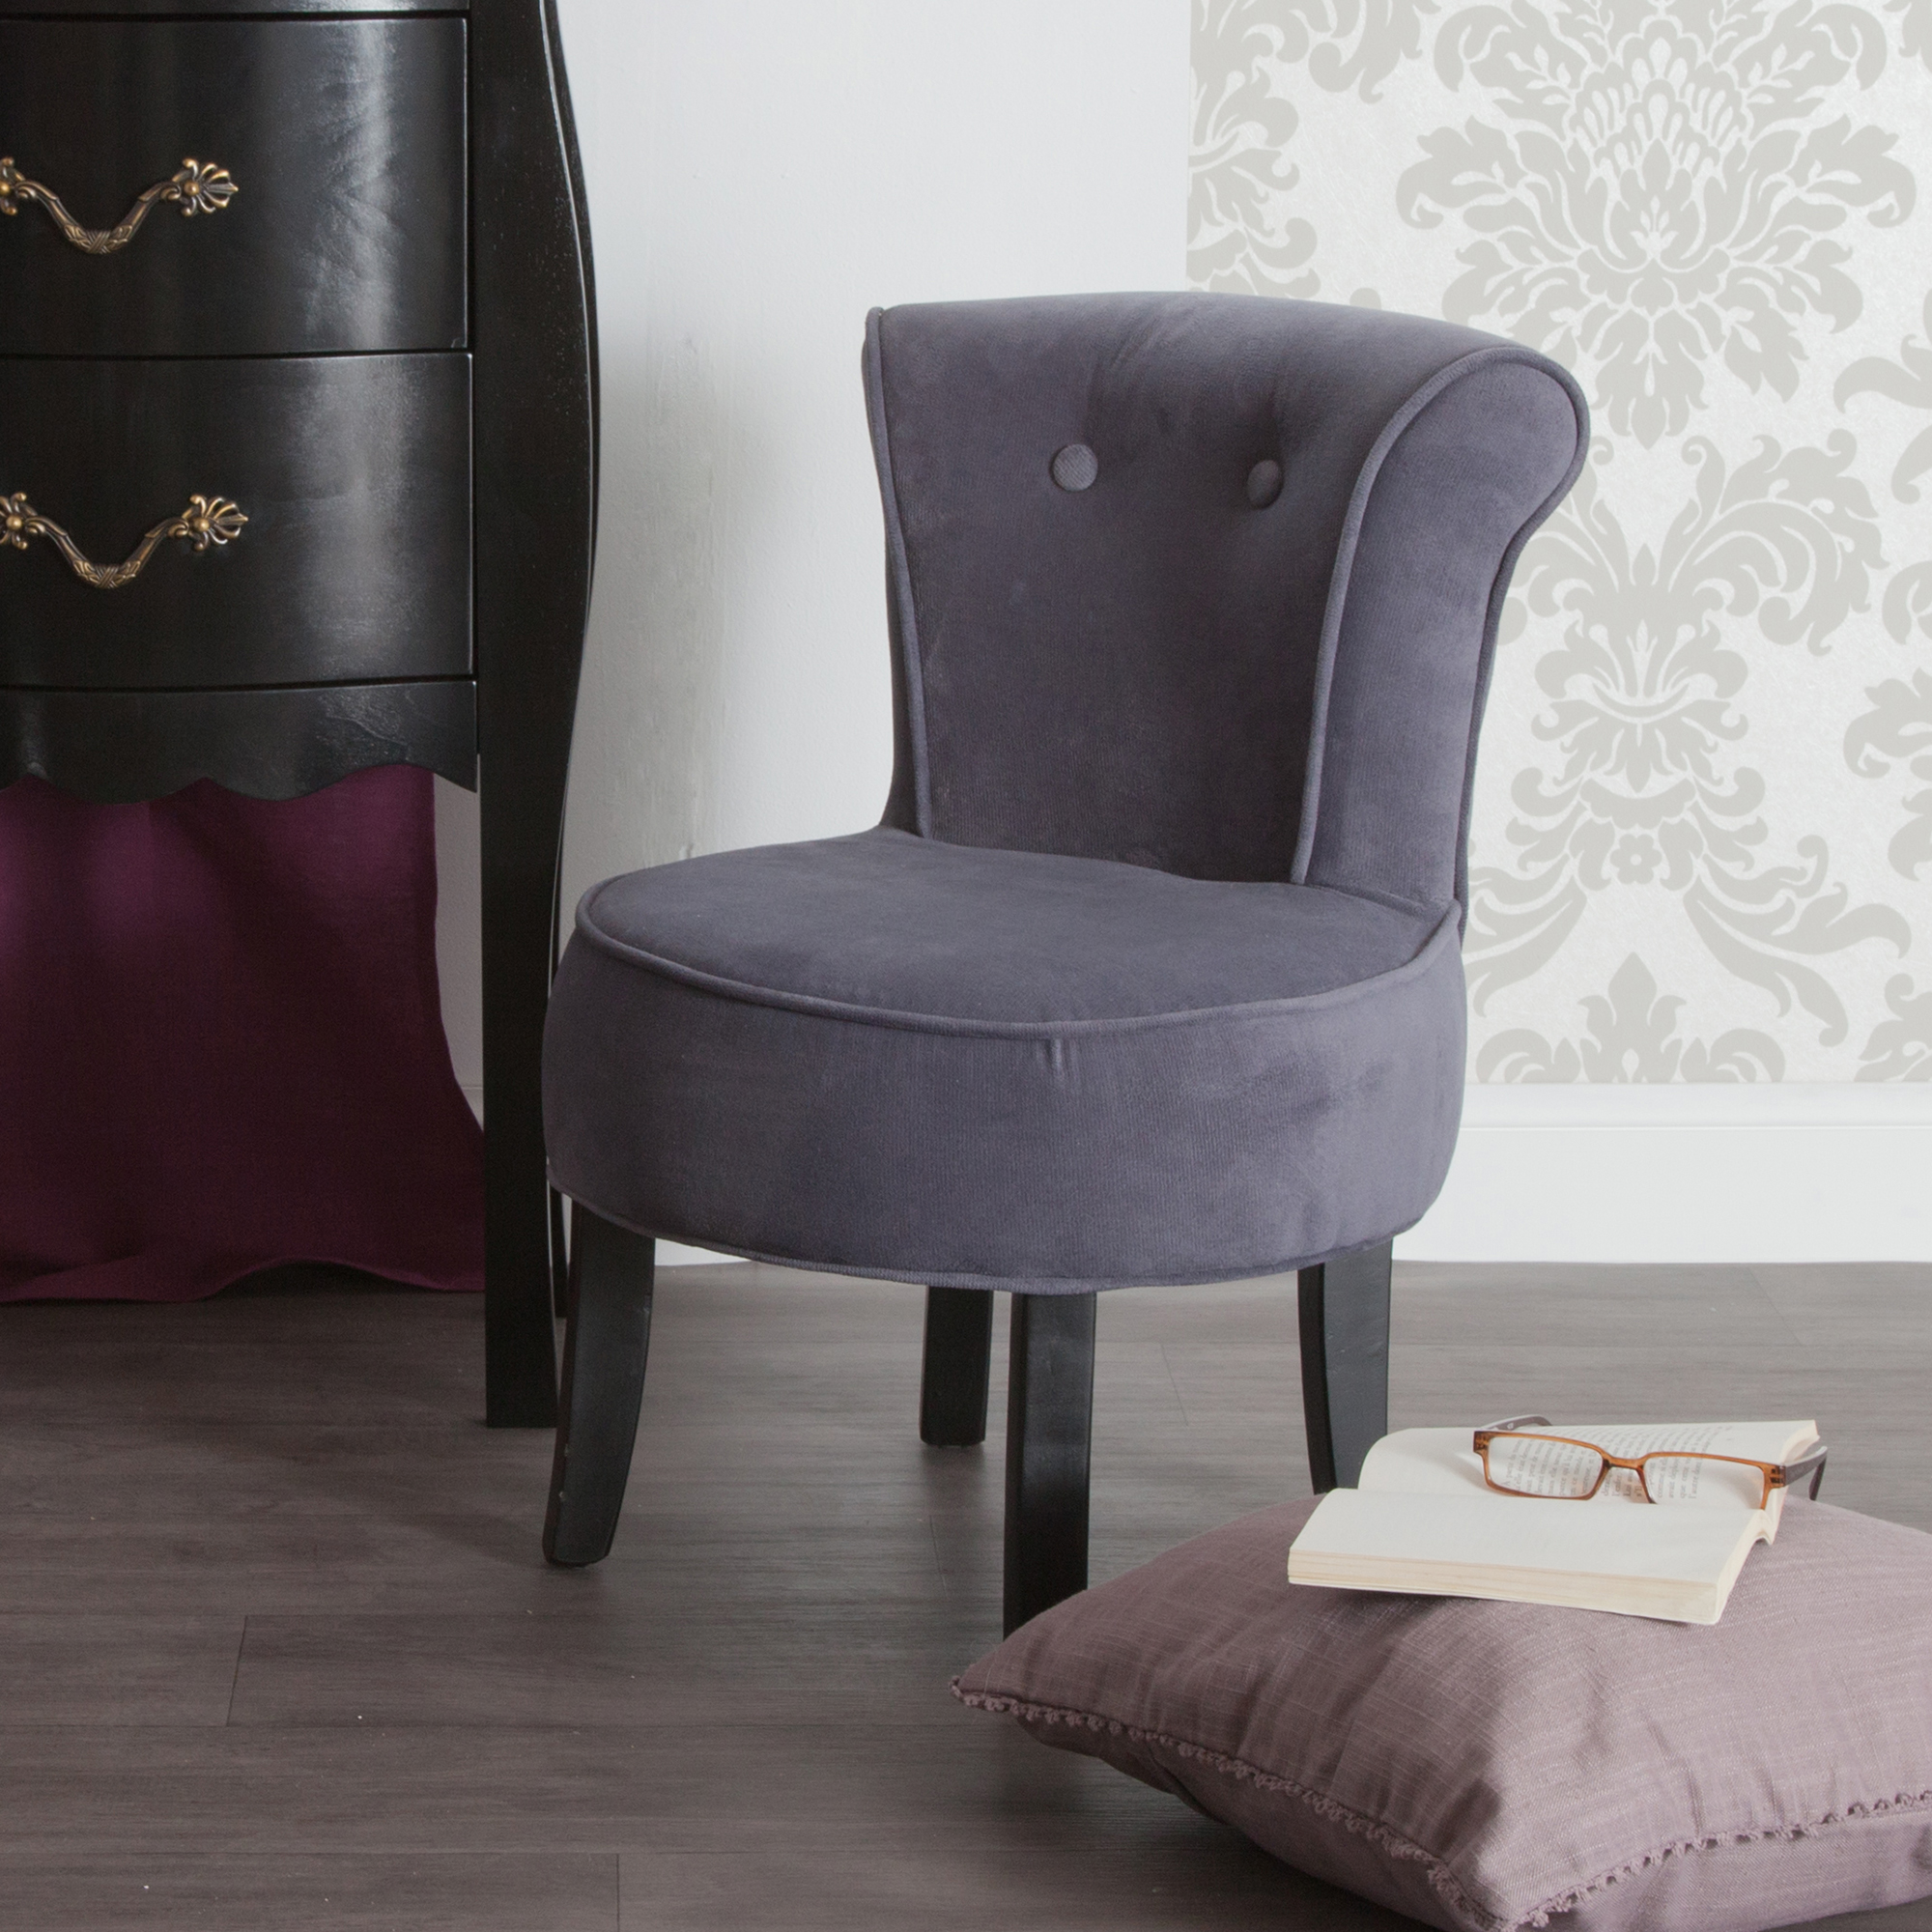 fauteuil de style pas cher id es de d coration int rieure french decor. Black Bedroom Furniture Sets. Home Design Ideas